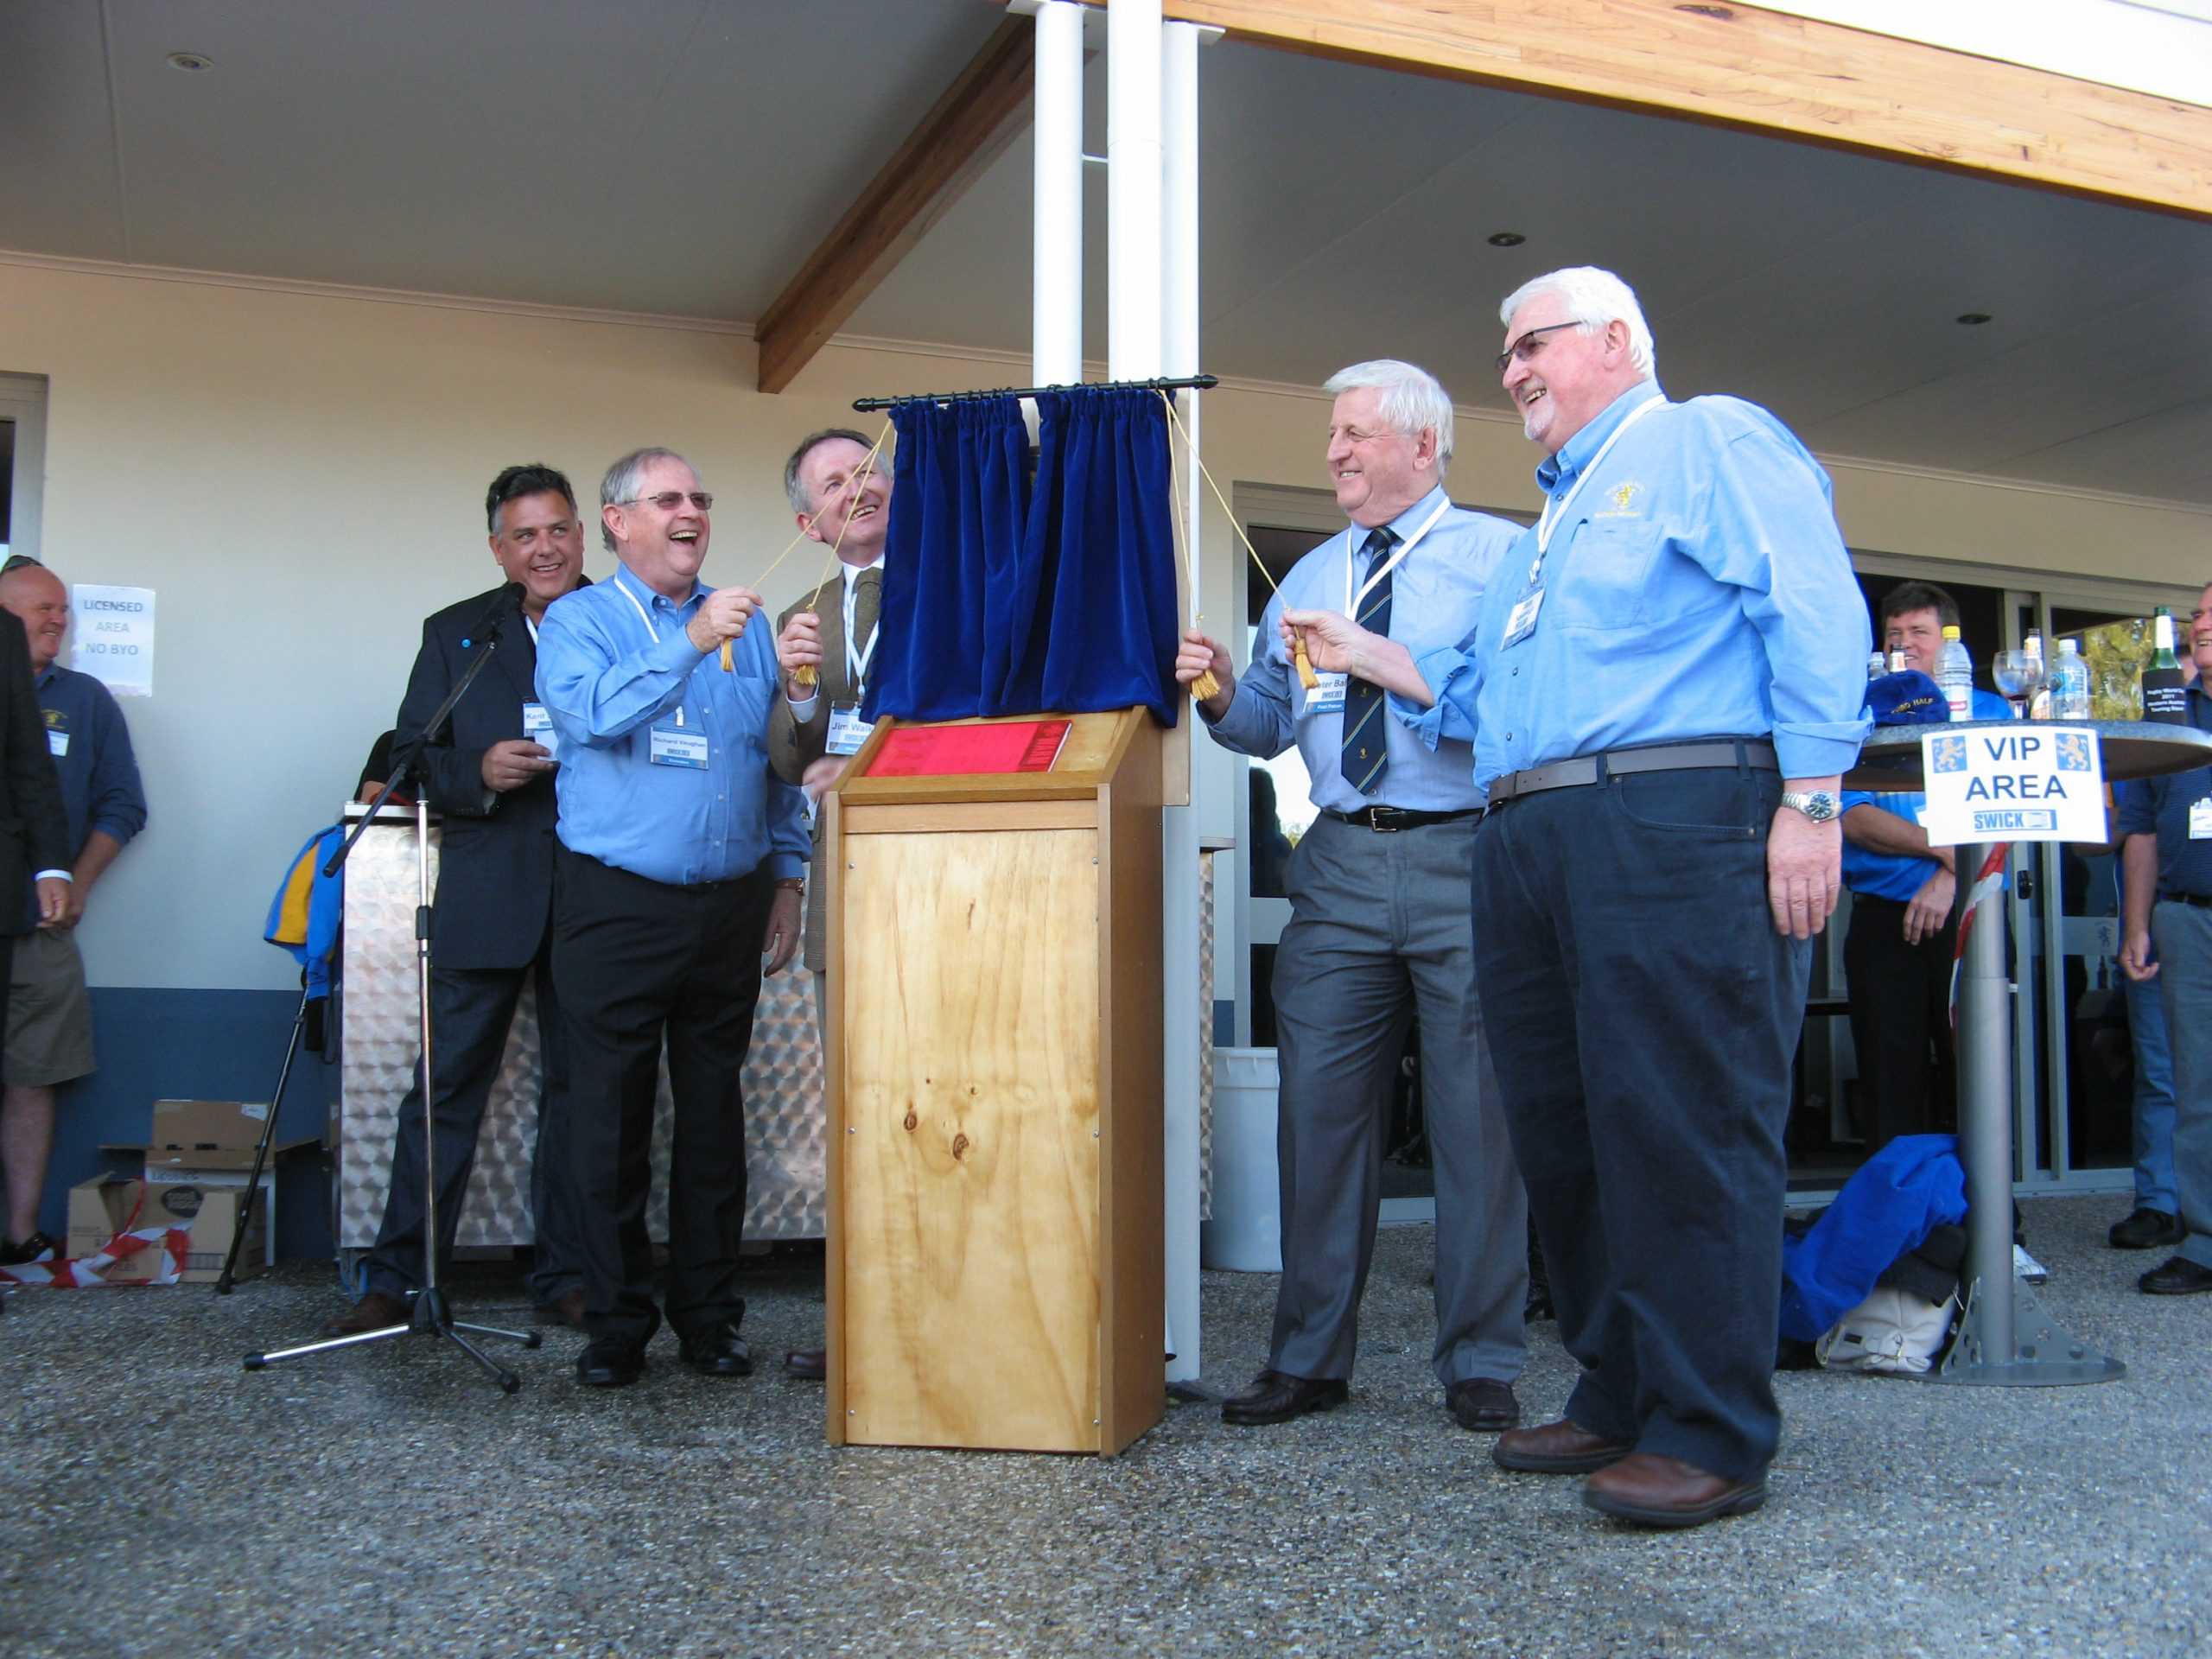 Martin Kavanagh on right, at the opening of the new clubhouse in 2012.